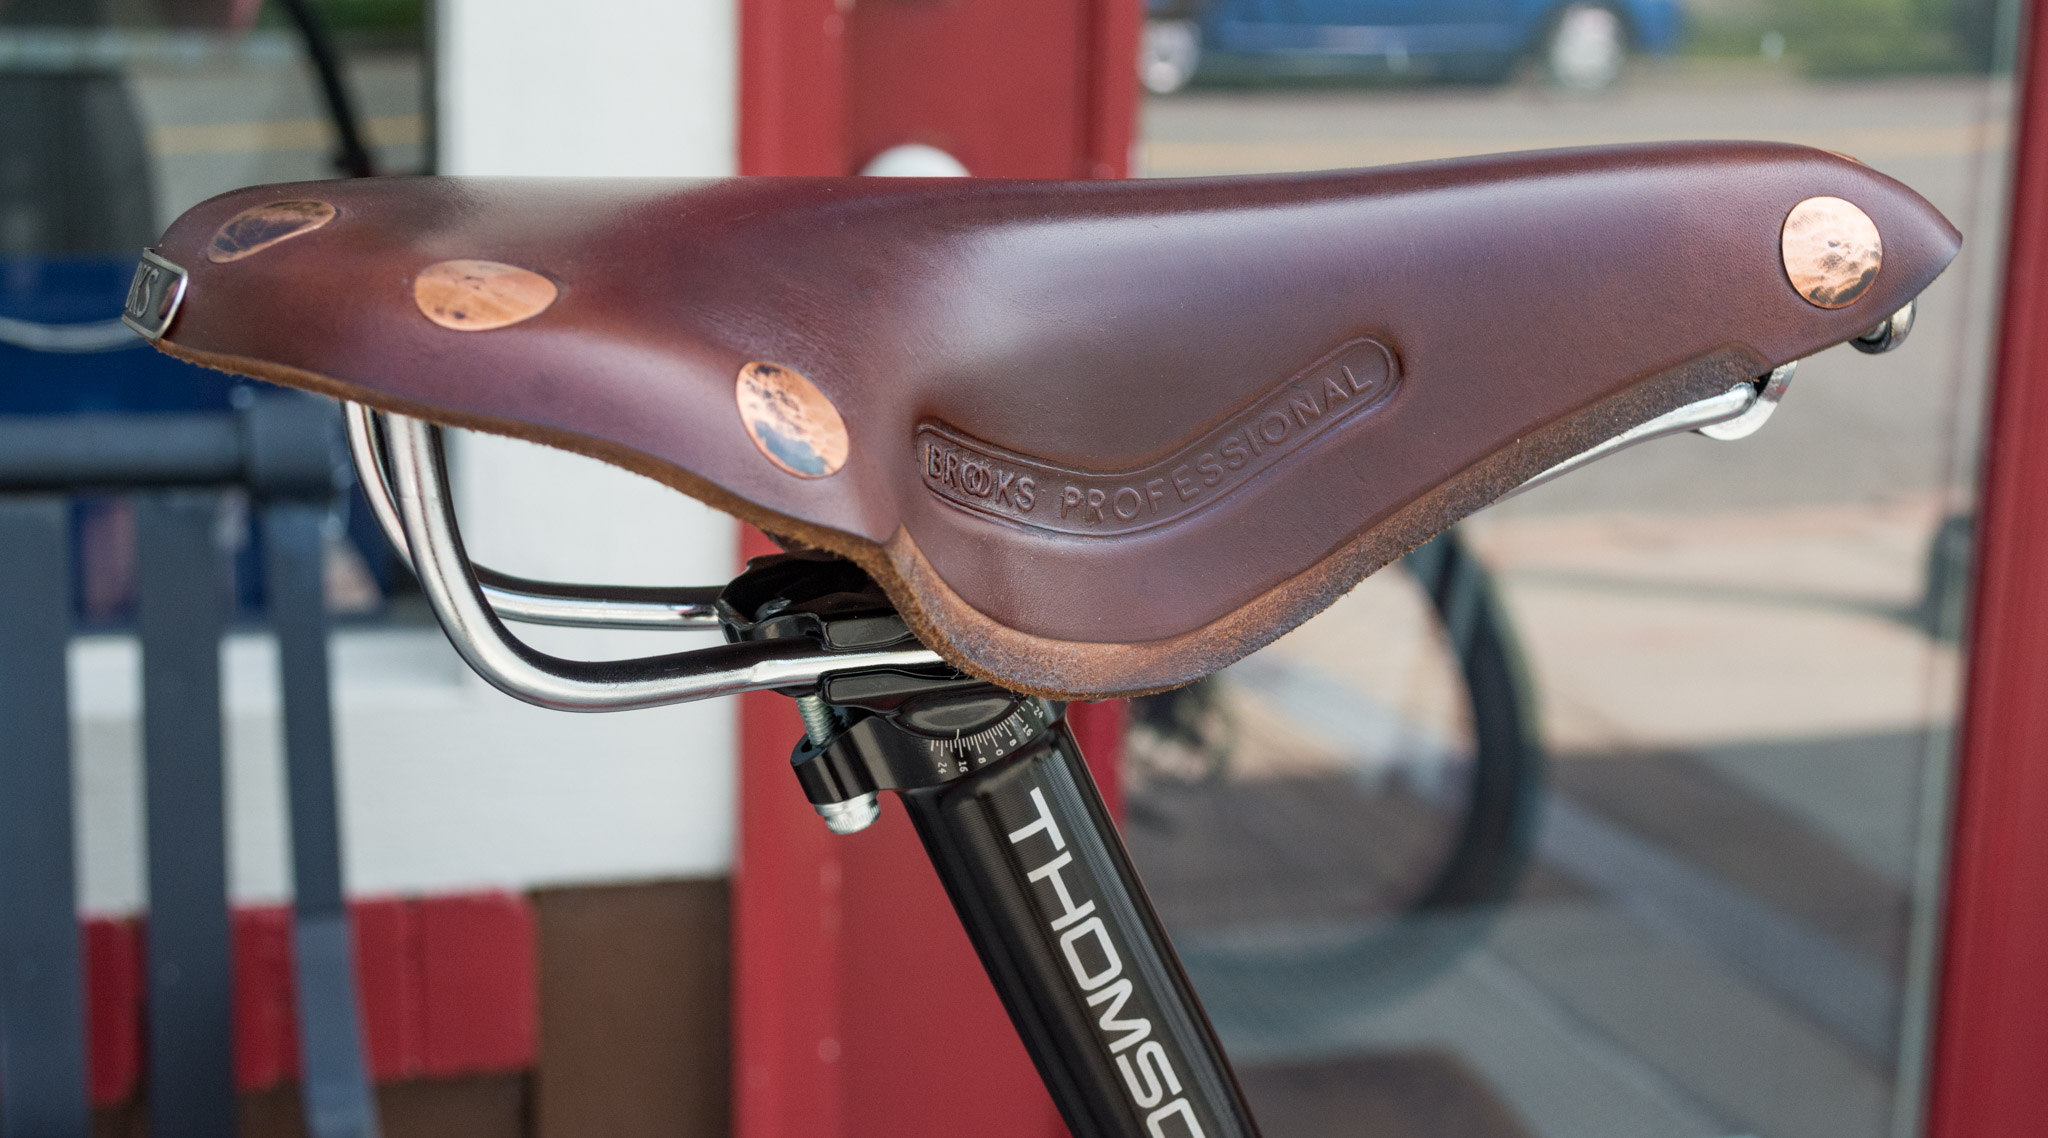 Brooks Professional Leather Saddle with copper rivets